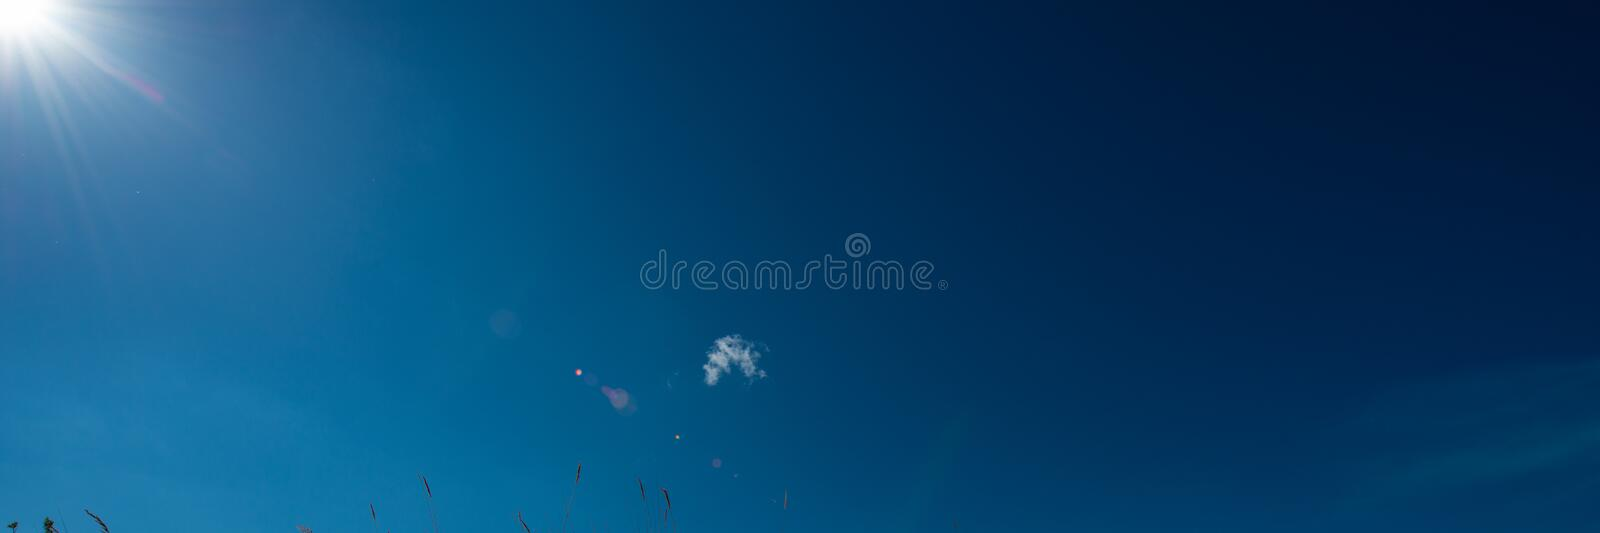 Sun rays against the blue sky with a small cloud. Web banner royalty free stock images